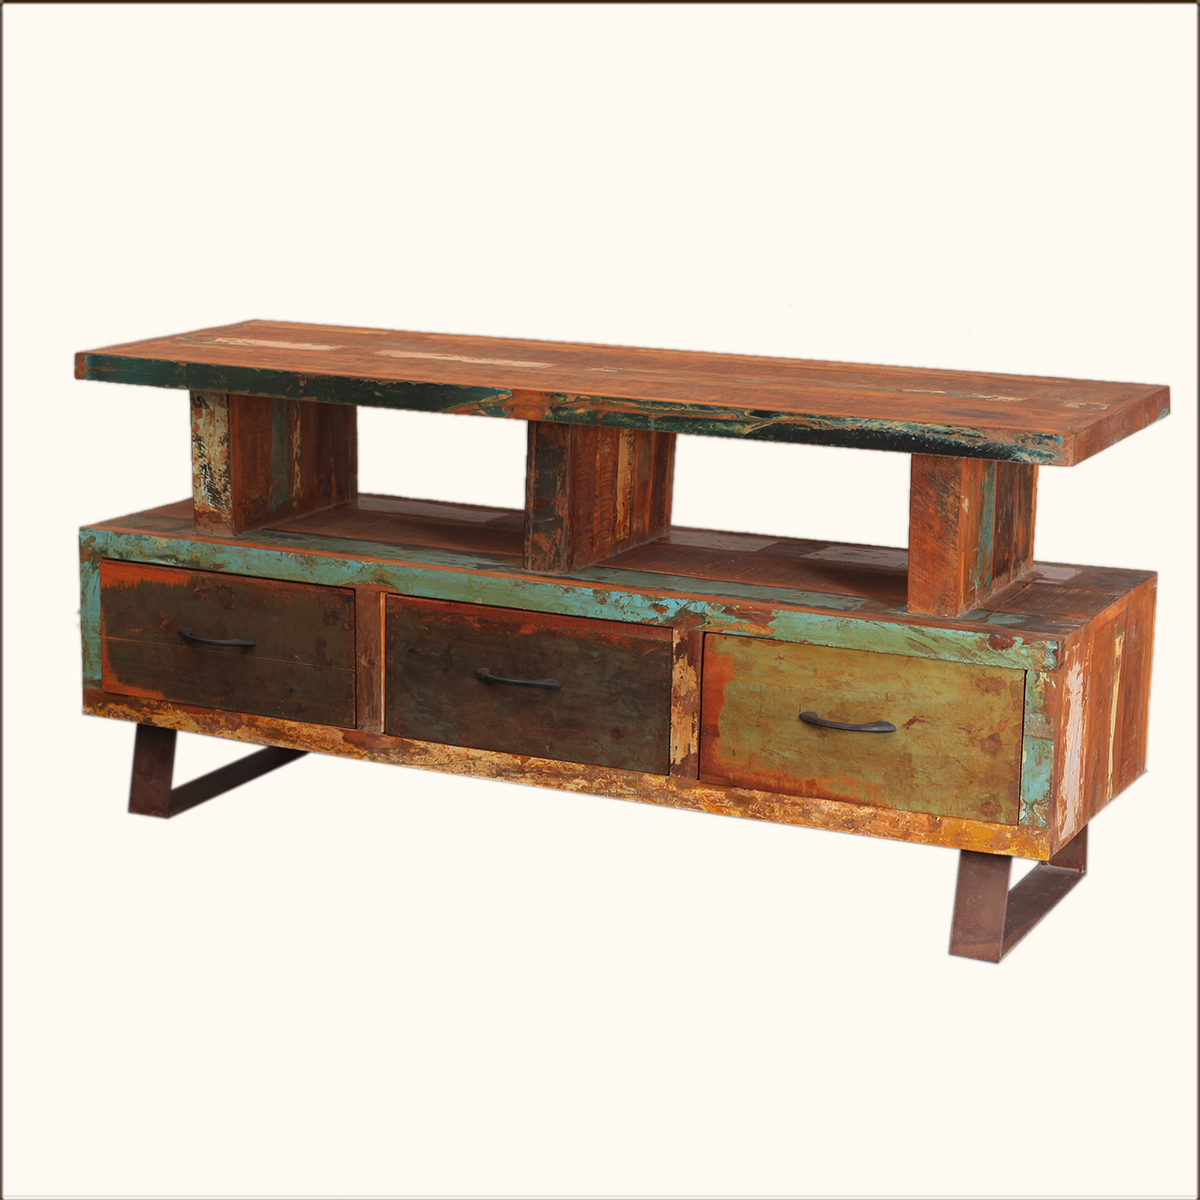 Distressed media console rustic reclaimed wood iron tv